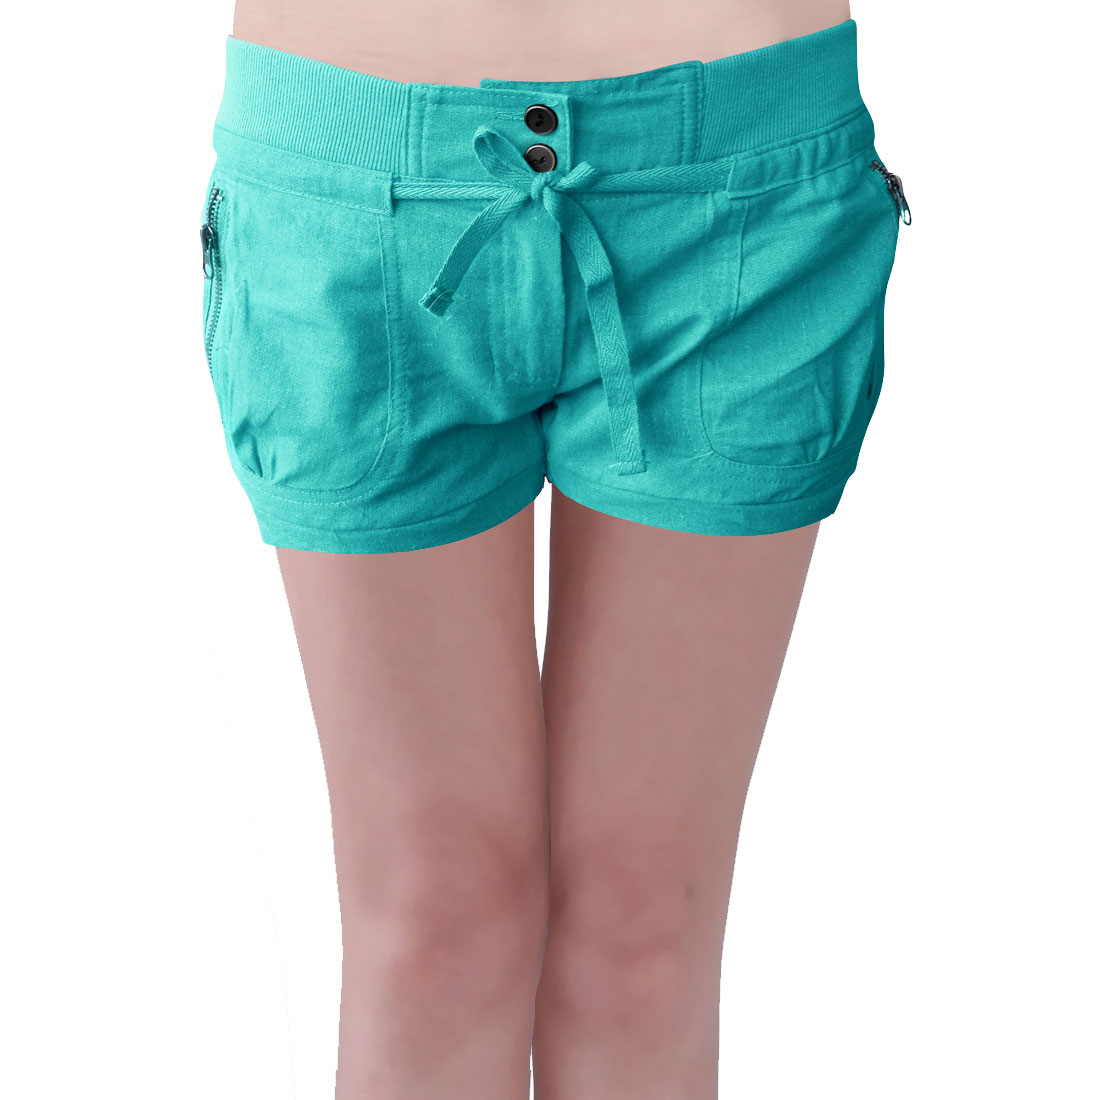 Women Elastic Waist Zippered Pockets Leisure Short Pants Green L